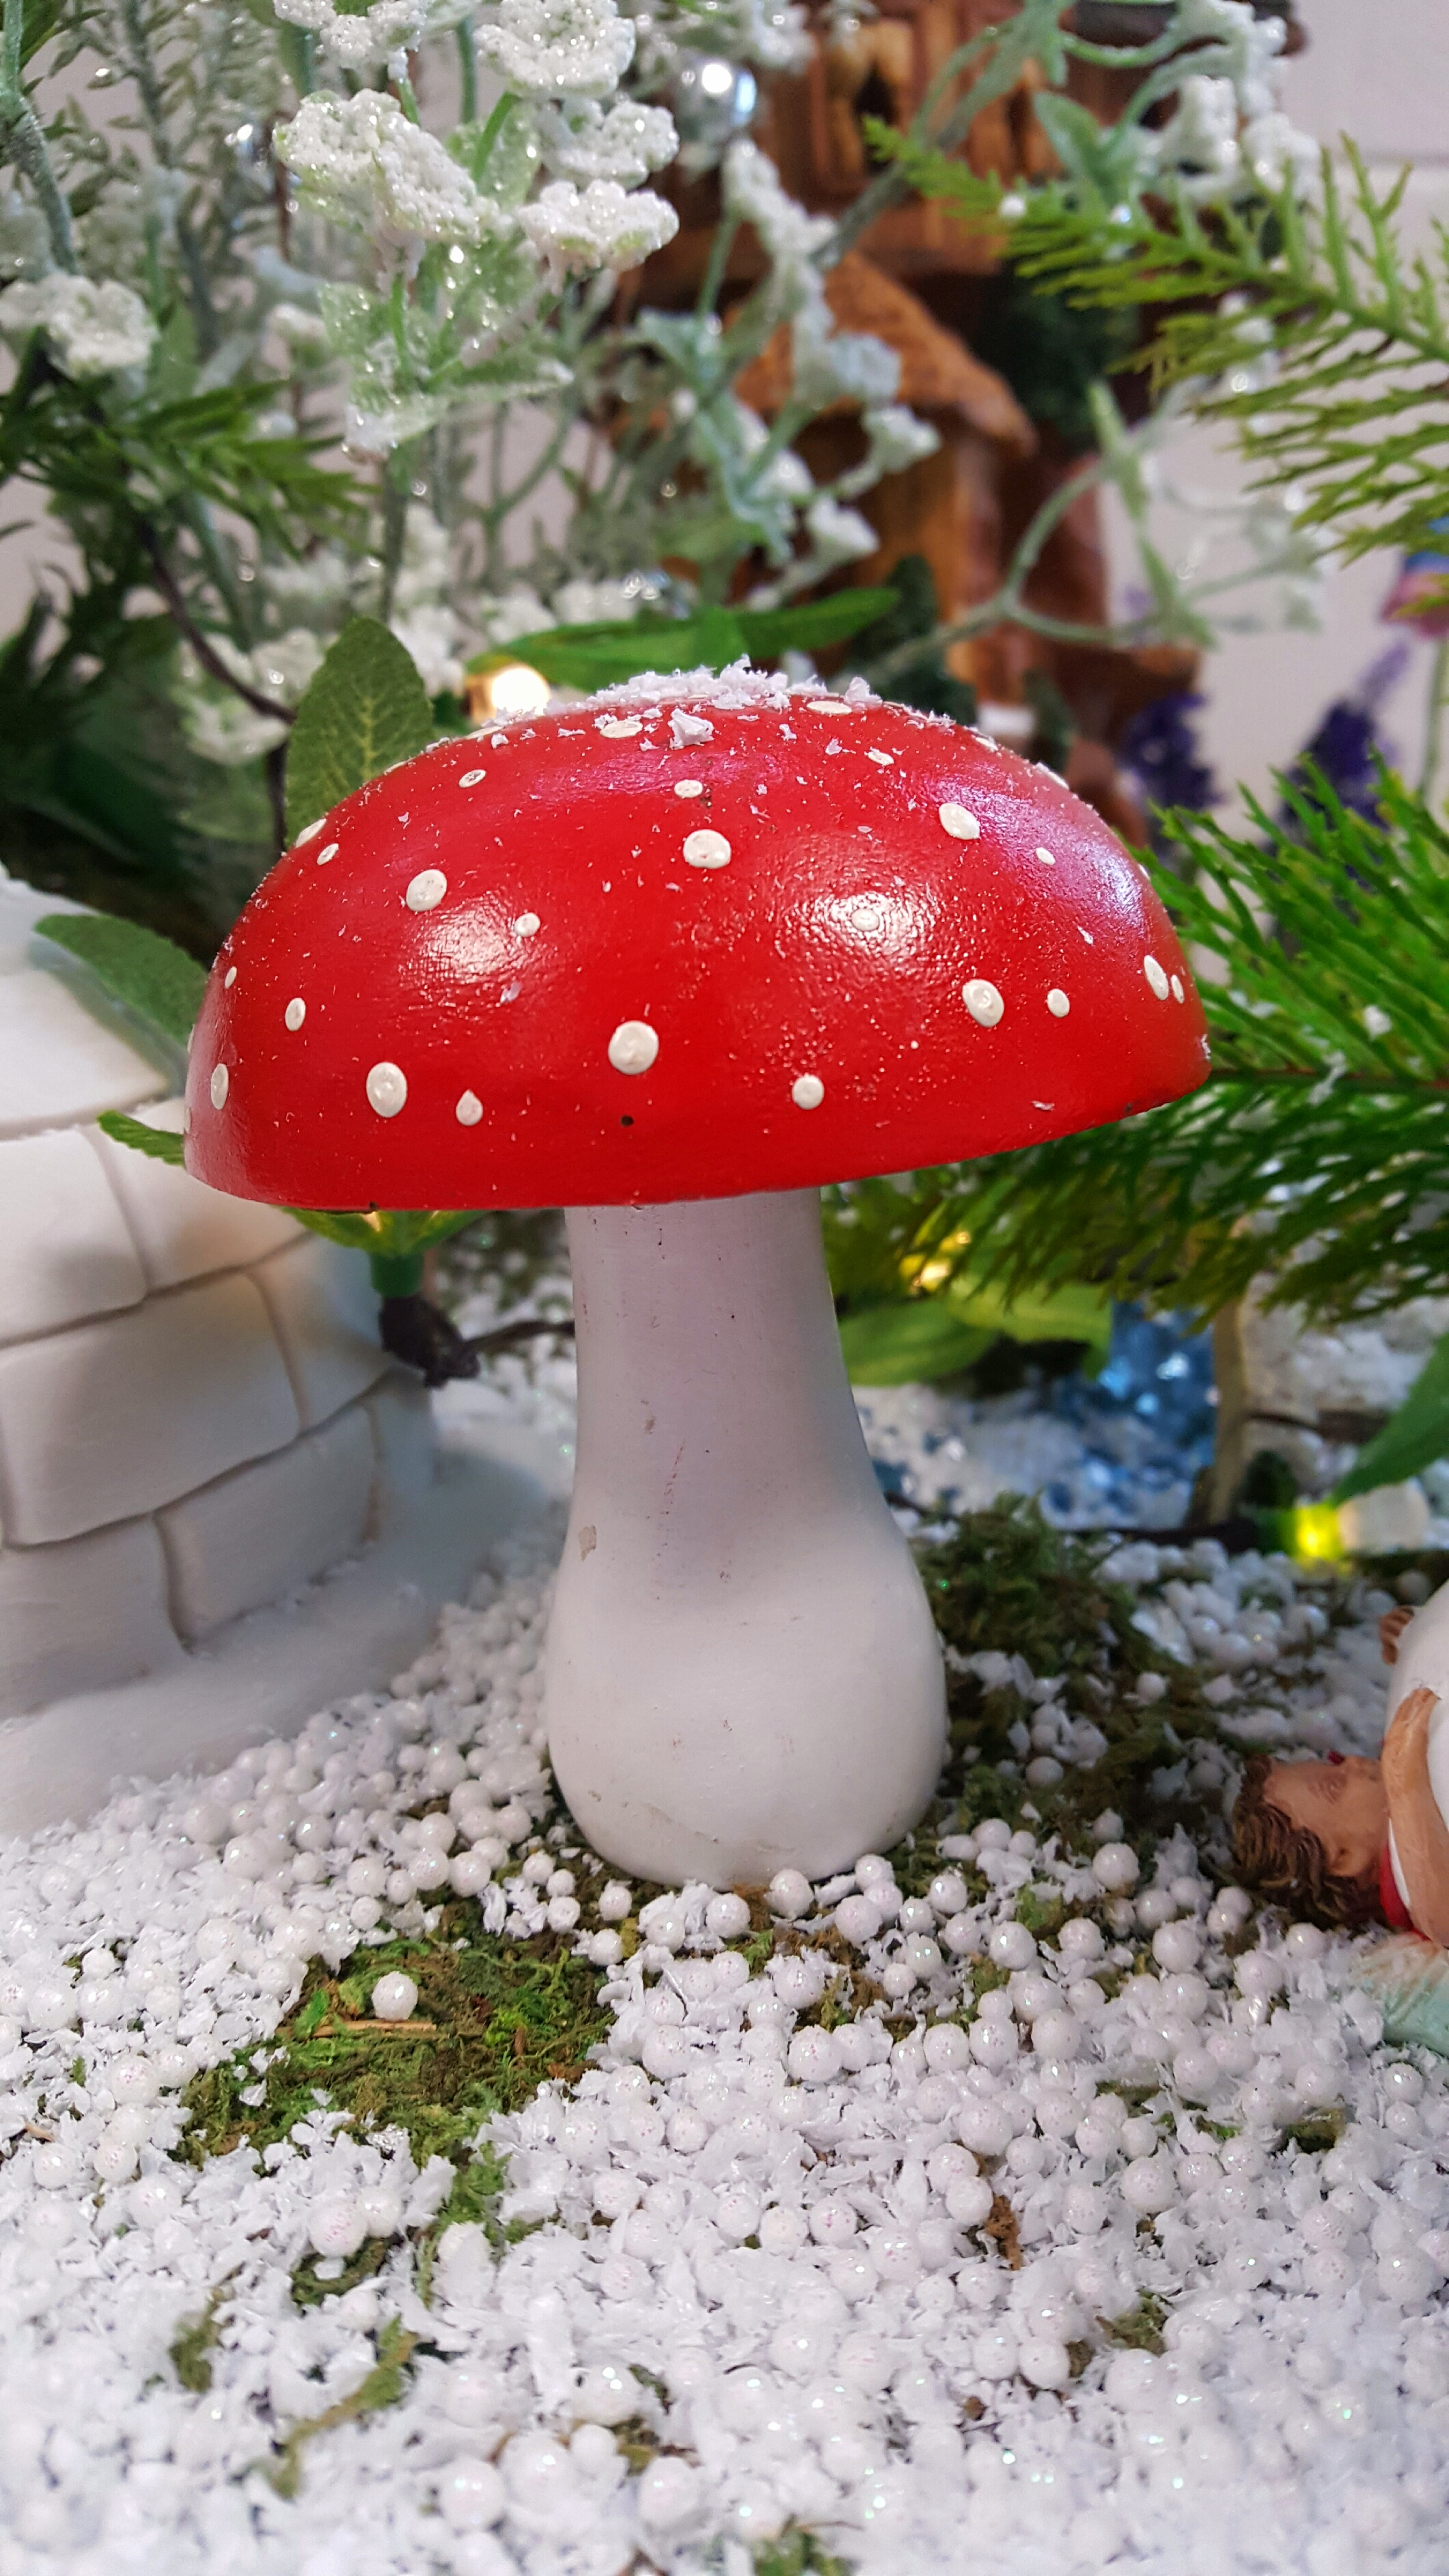 Red and white toadstoolfairygardensukcouk